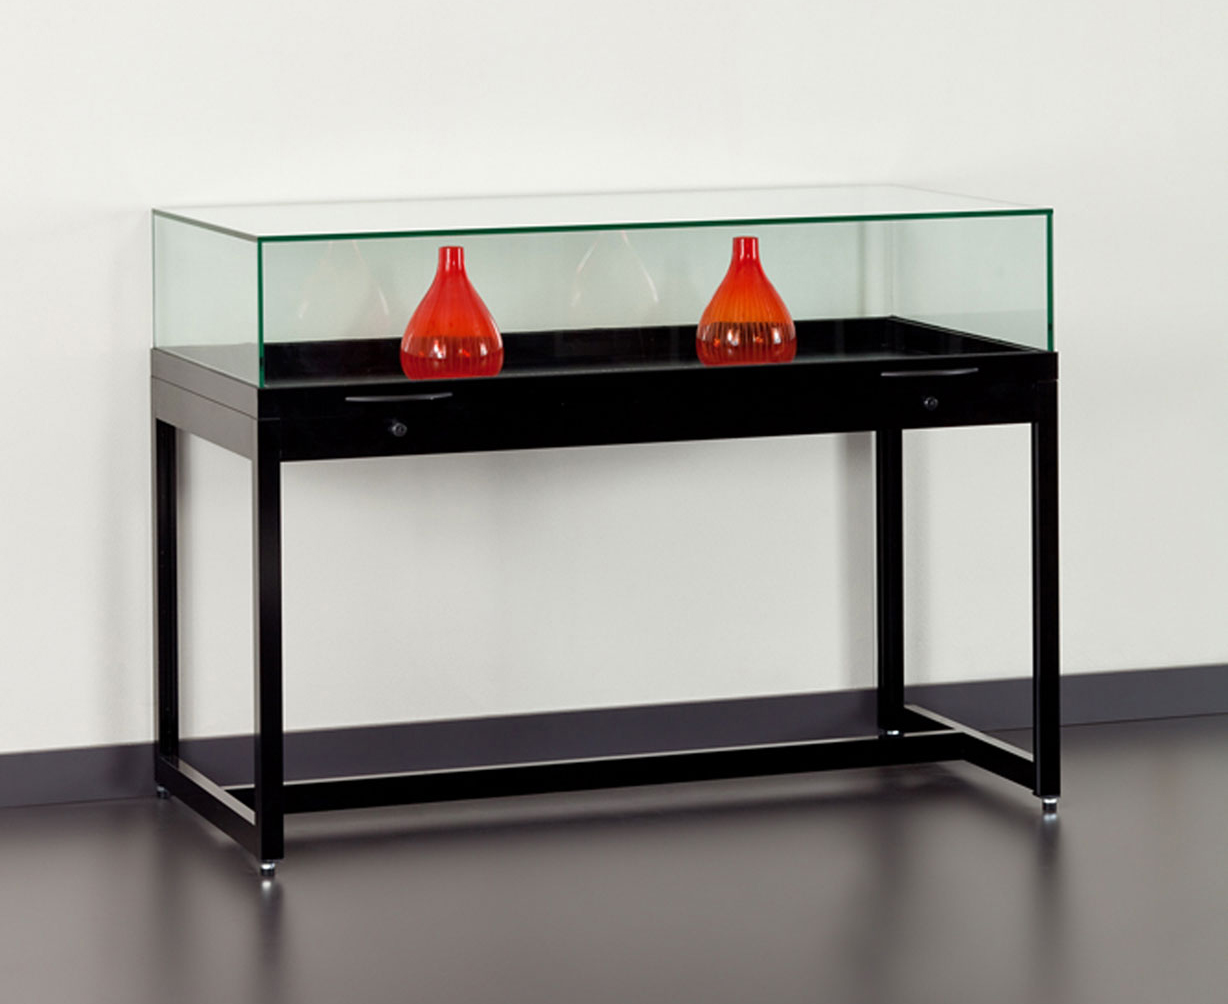 Display Case End Table Museum Glass Display Case Shadow Box Coffee Table Ideas